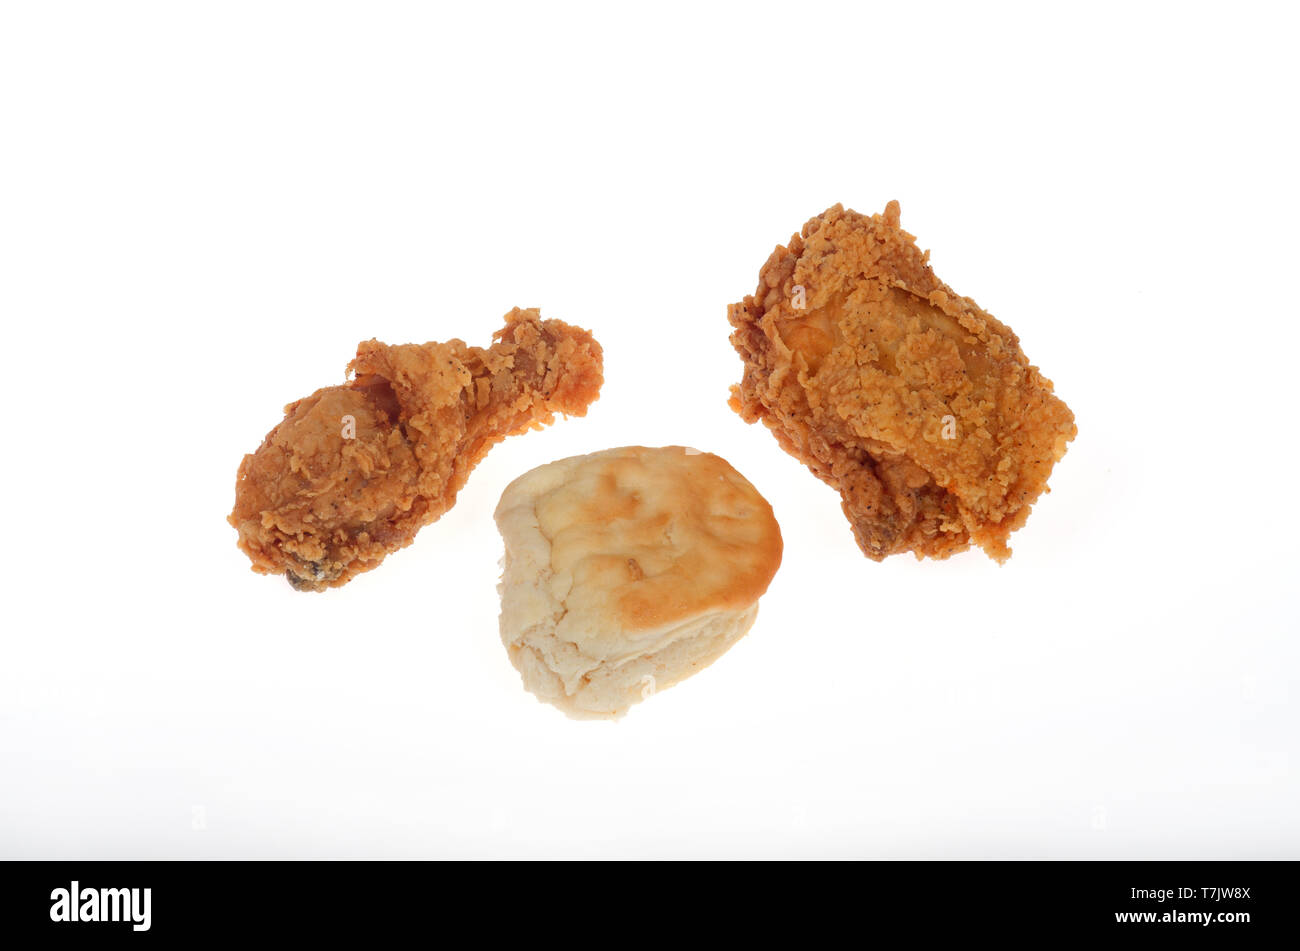 KFC crispy fried chicken drumstick, thigh and biscuit on white background - Stock Image